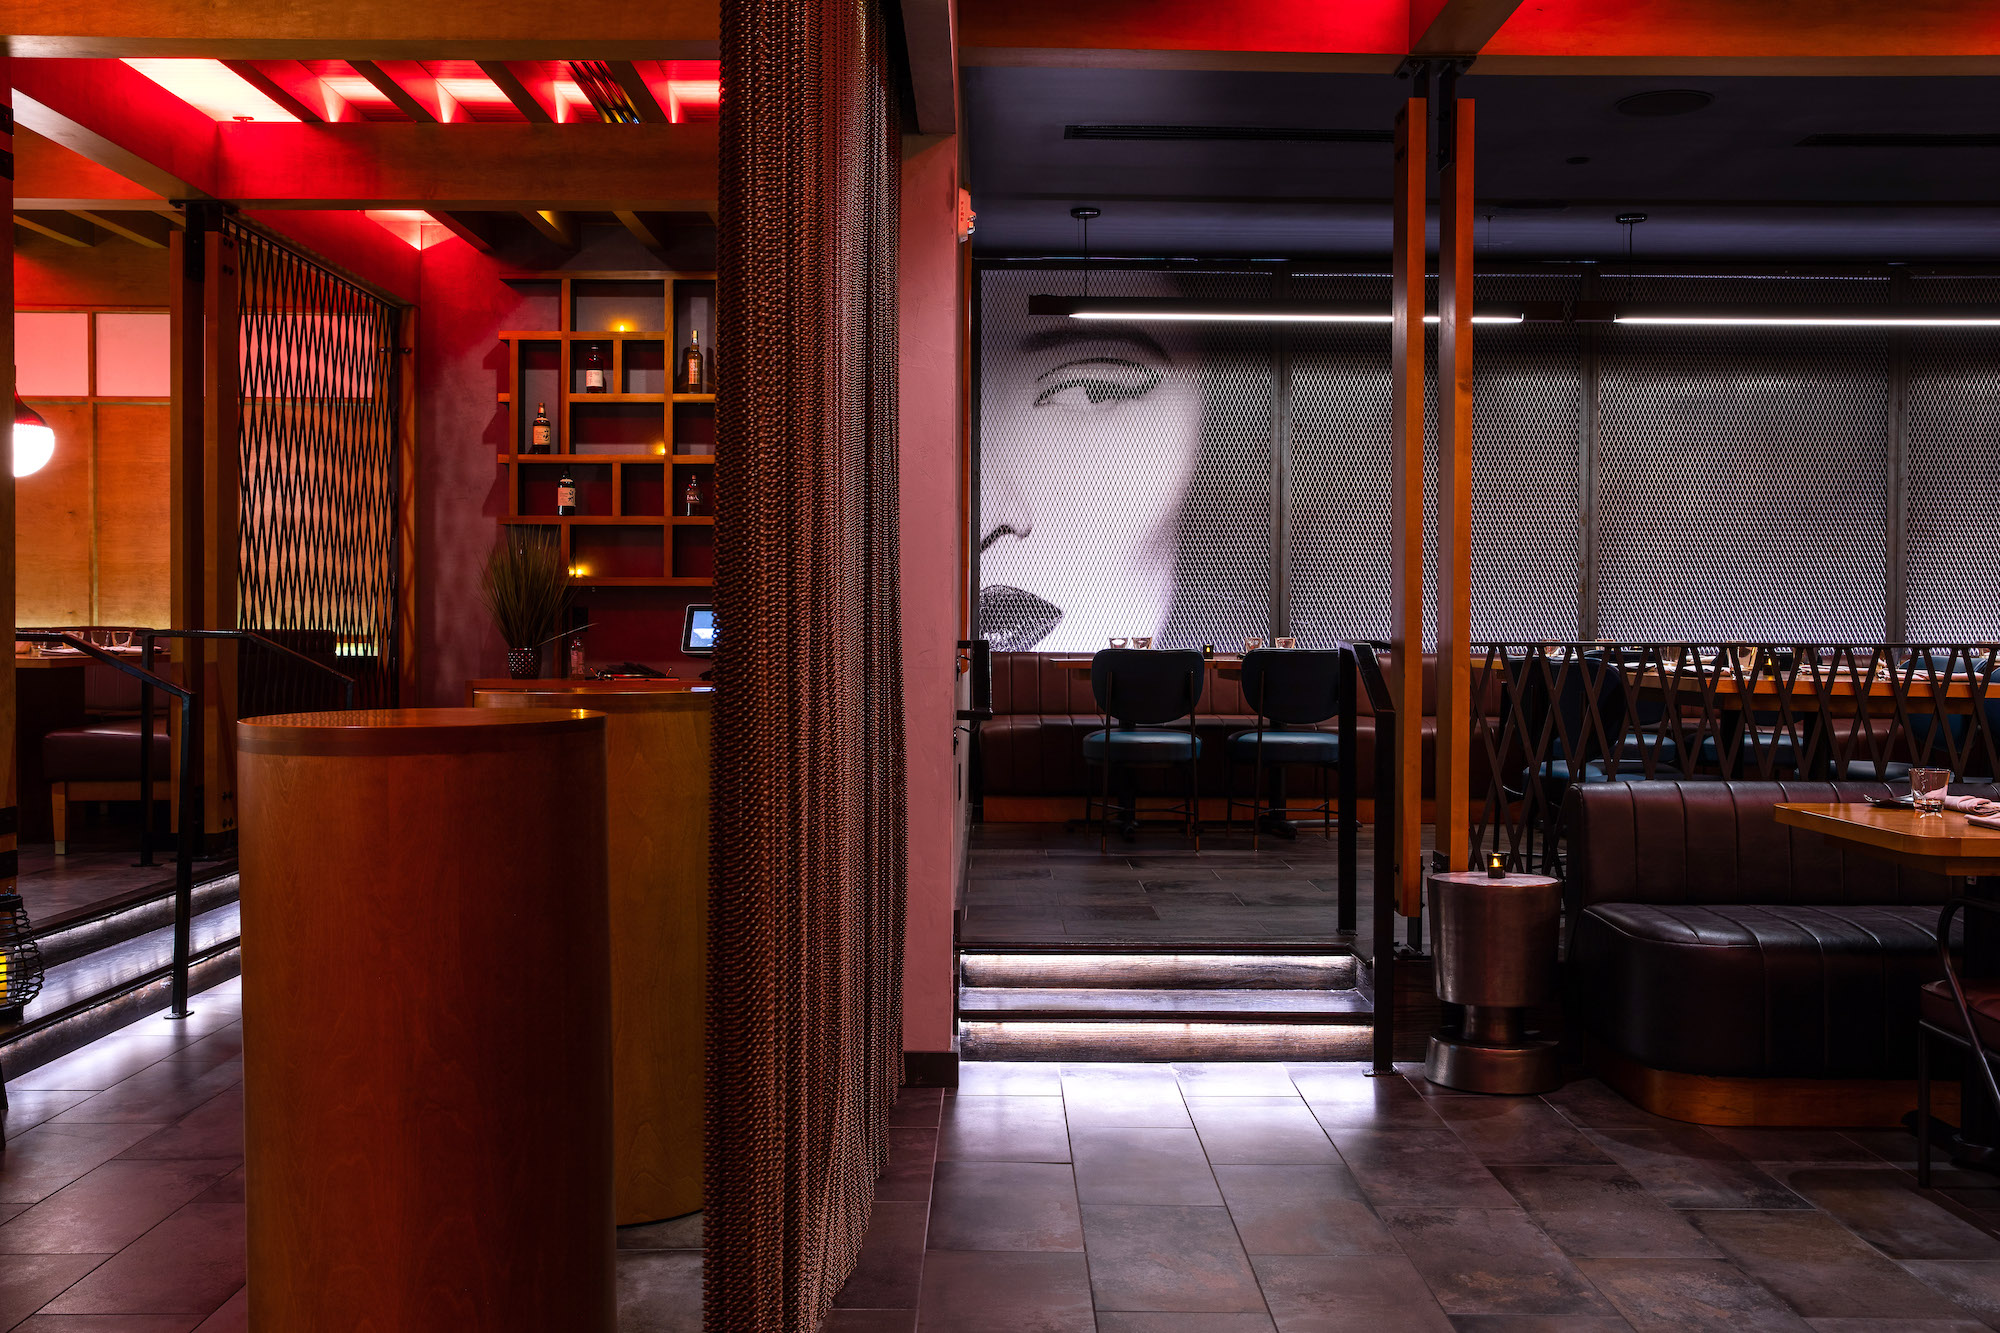 Virago-commercial architects-design space inside restaurant-Japanese influence